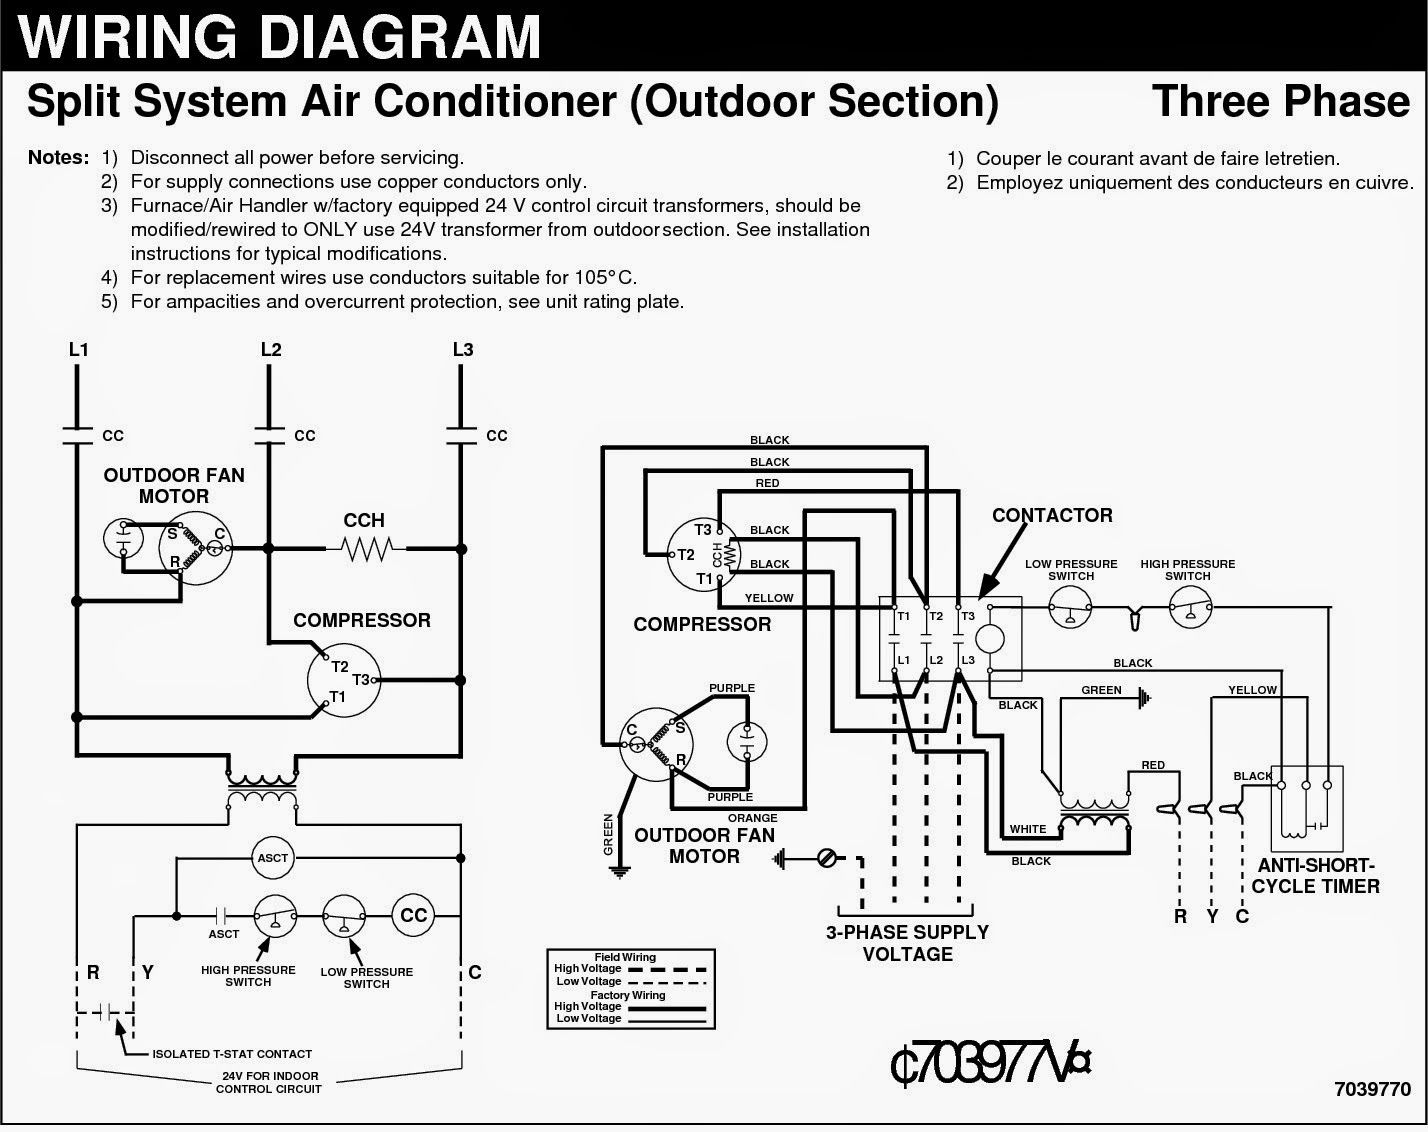 image result for wiring diagram of split ac 380 volts 10 tons rh pinterest com wiring diagram for split system air conditioner Basic Air Conditioning Wiring Diagram